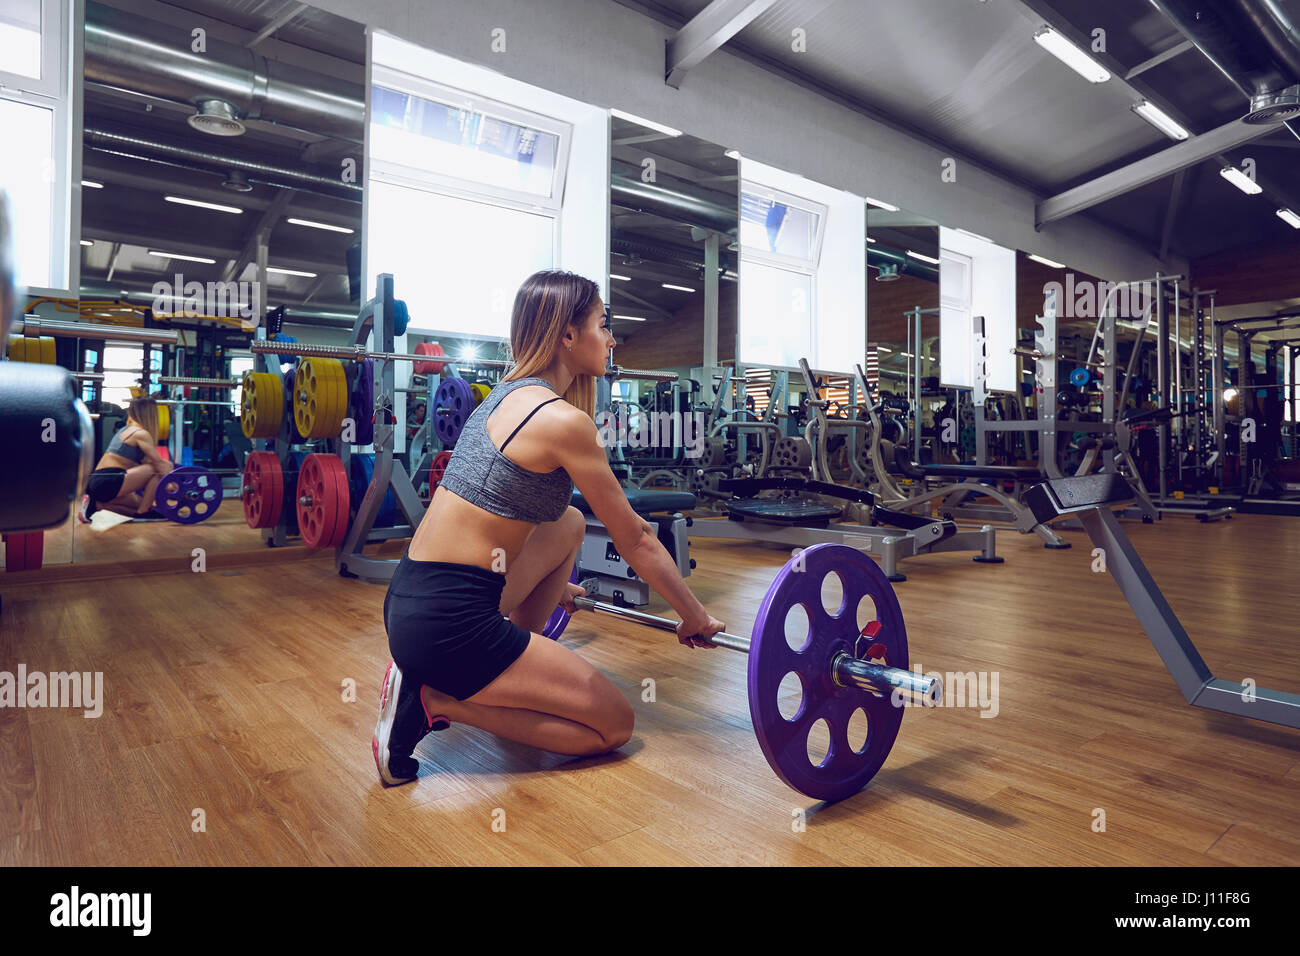 Girl with a barbell in the gym. - Stock Image